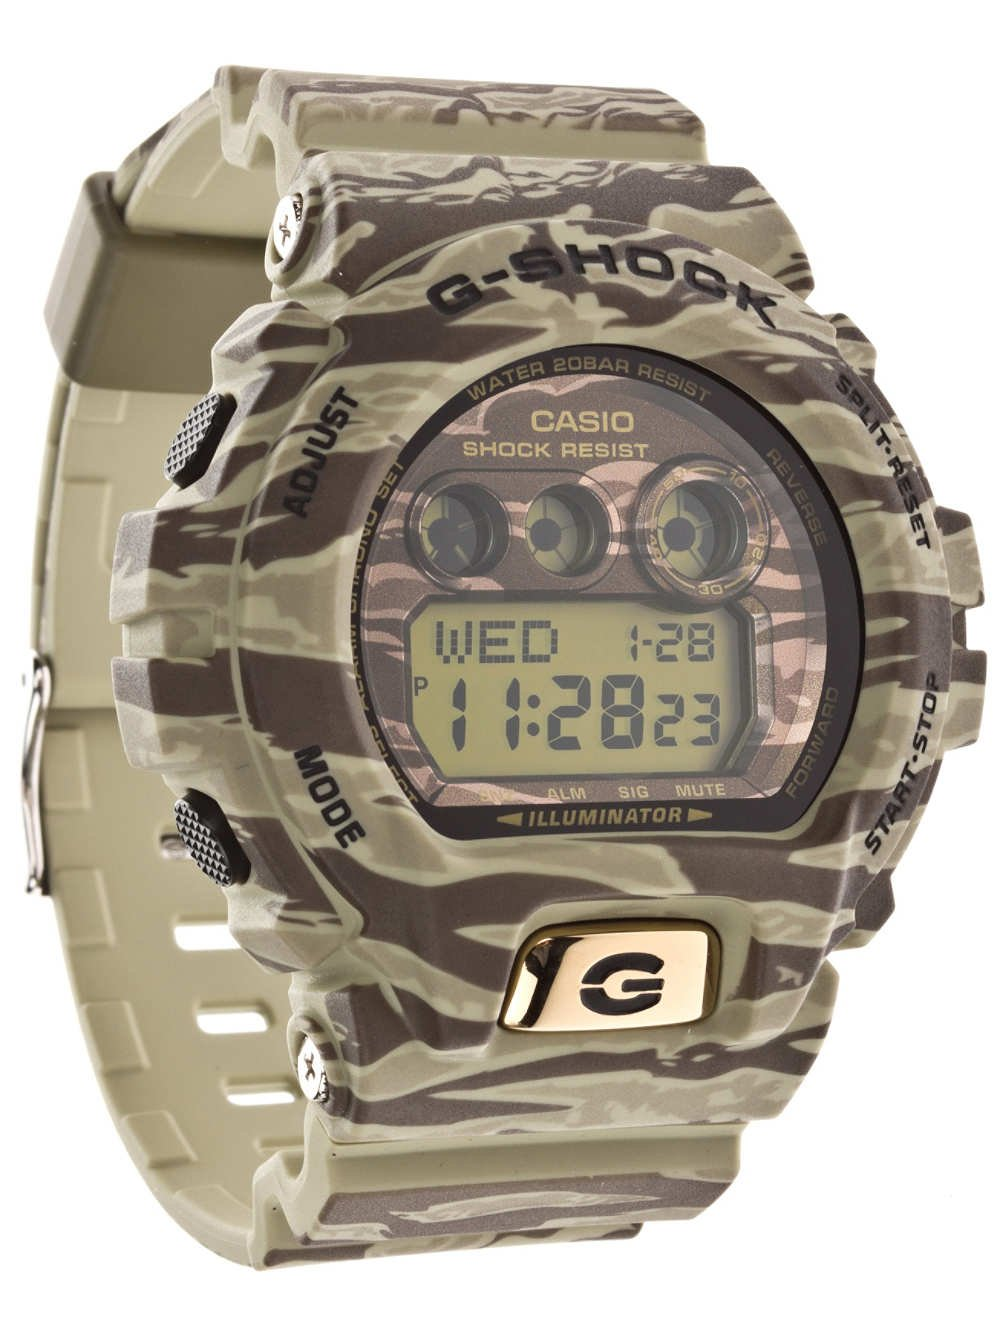 galleon casio g shock g shock gd x6900tc 5er uhr watch. Black Bedroom Furniture Sets. Home Design Ideas